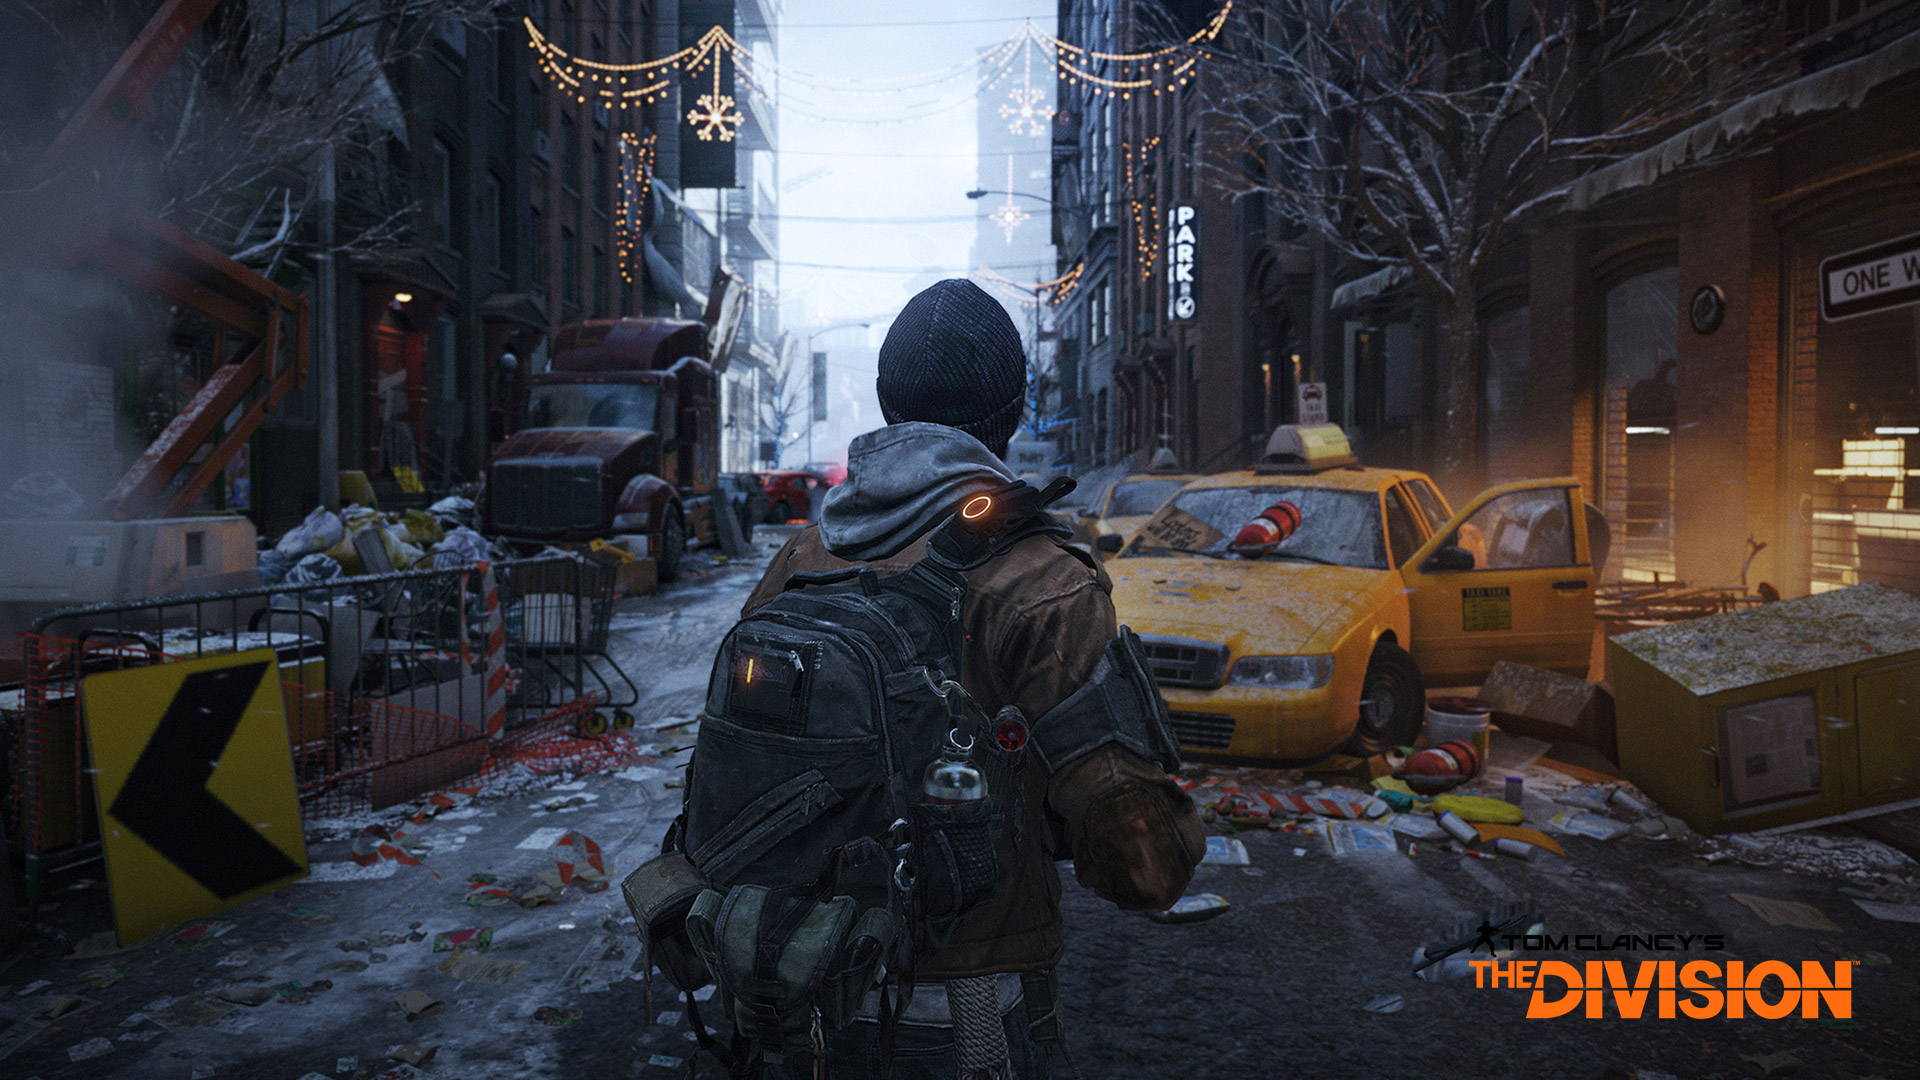 The Division wallpaper 4